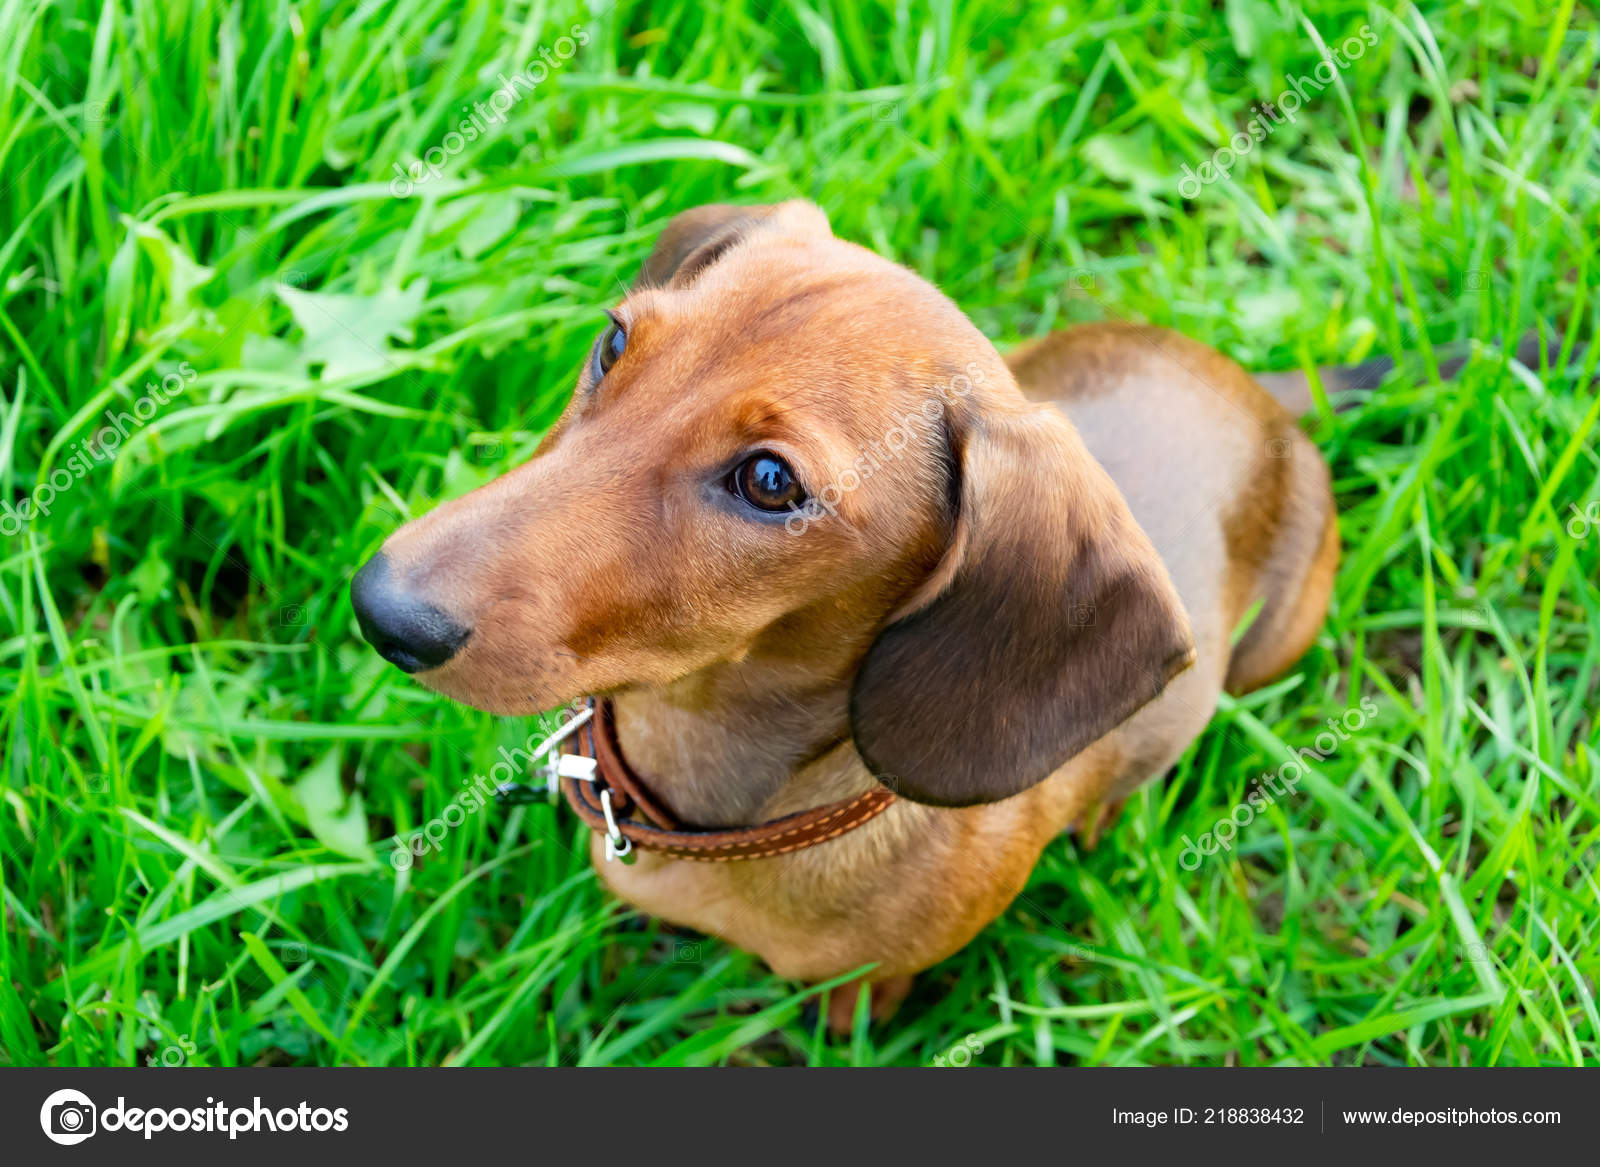 Miniature Dachshund Puppy Its Owner Young Energetic Dog Running Walk Stock Photo C Taisyakorchak 218838432